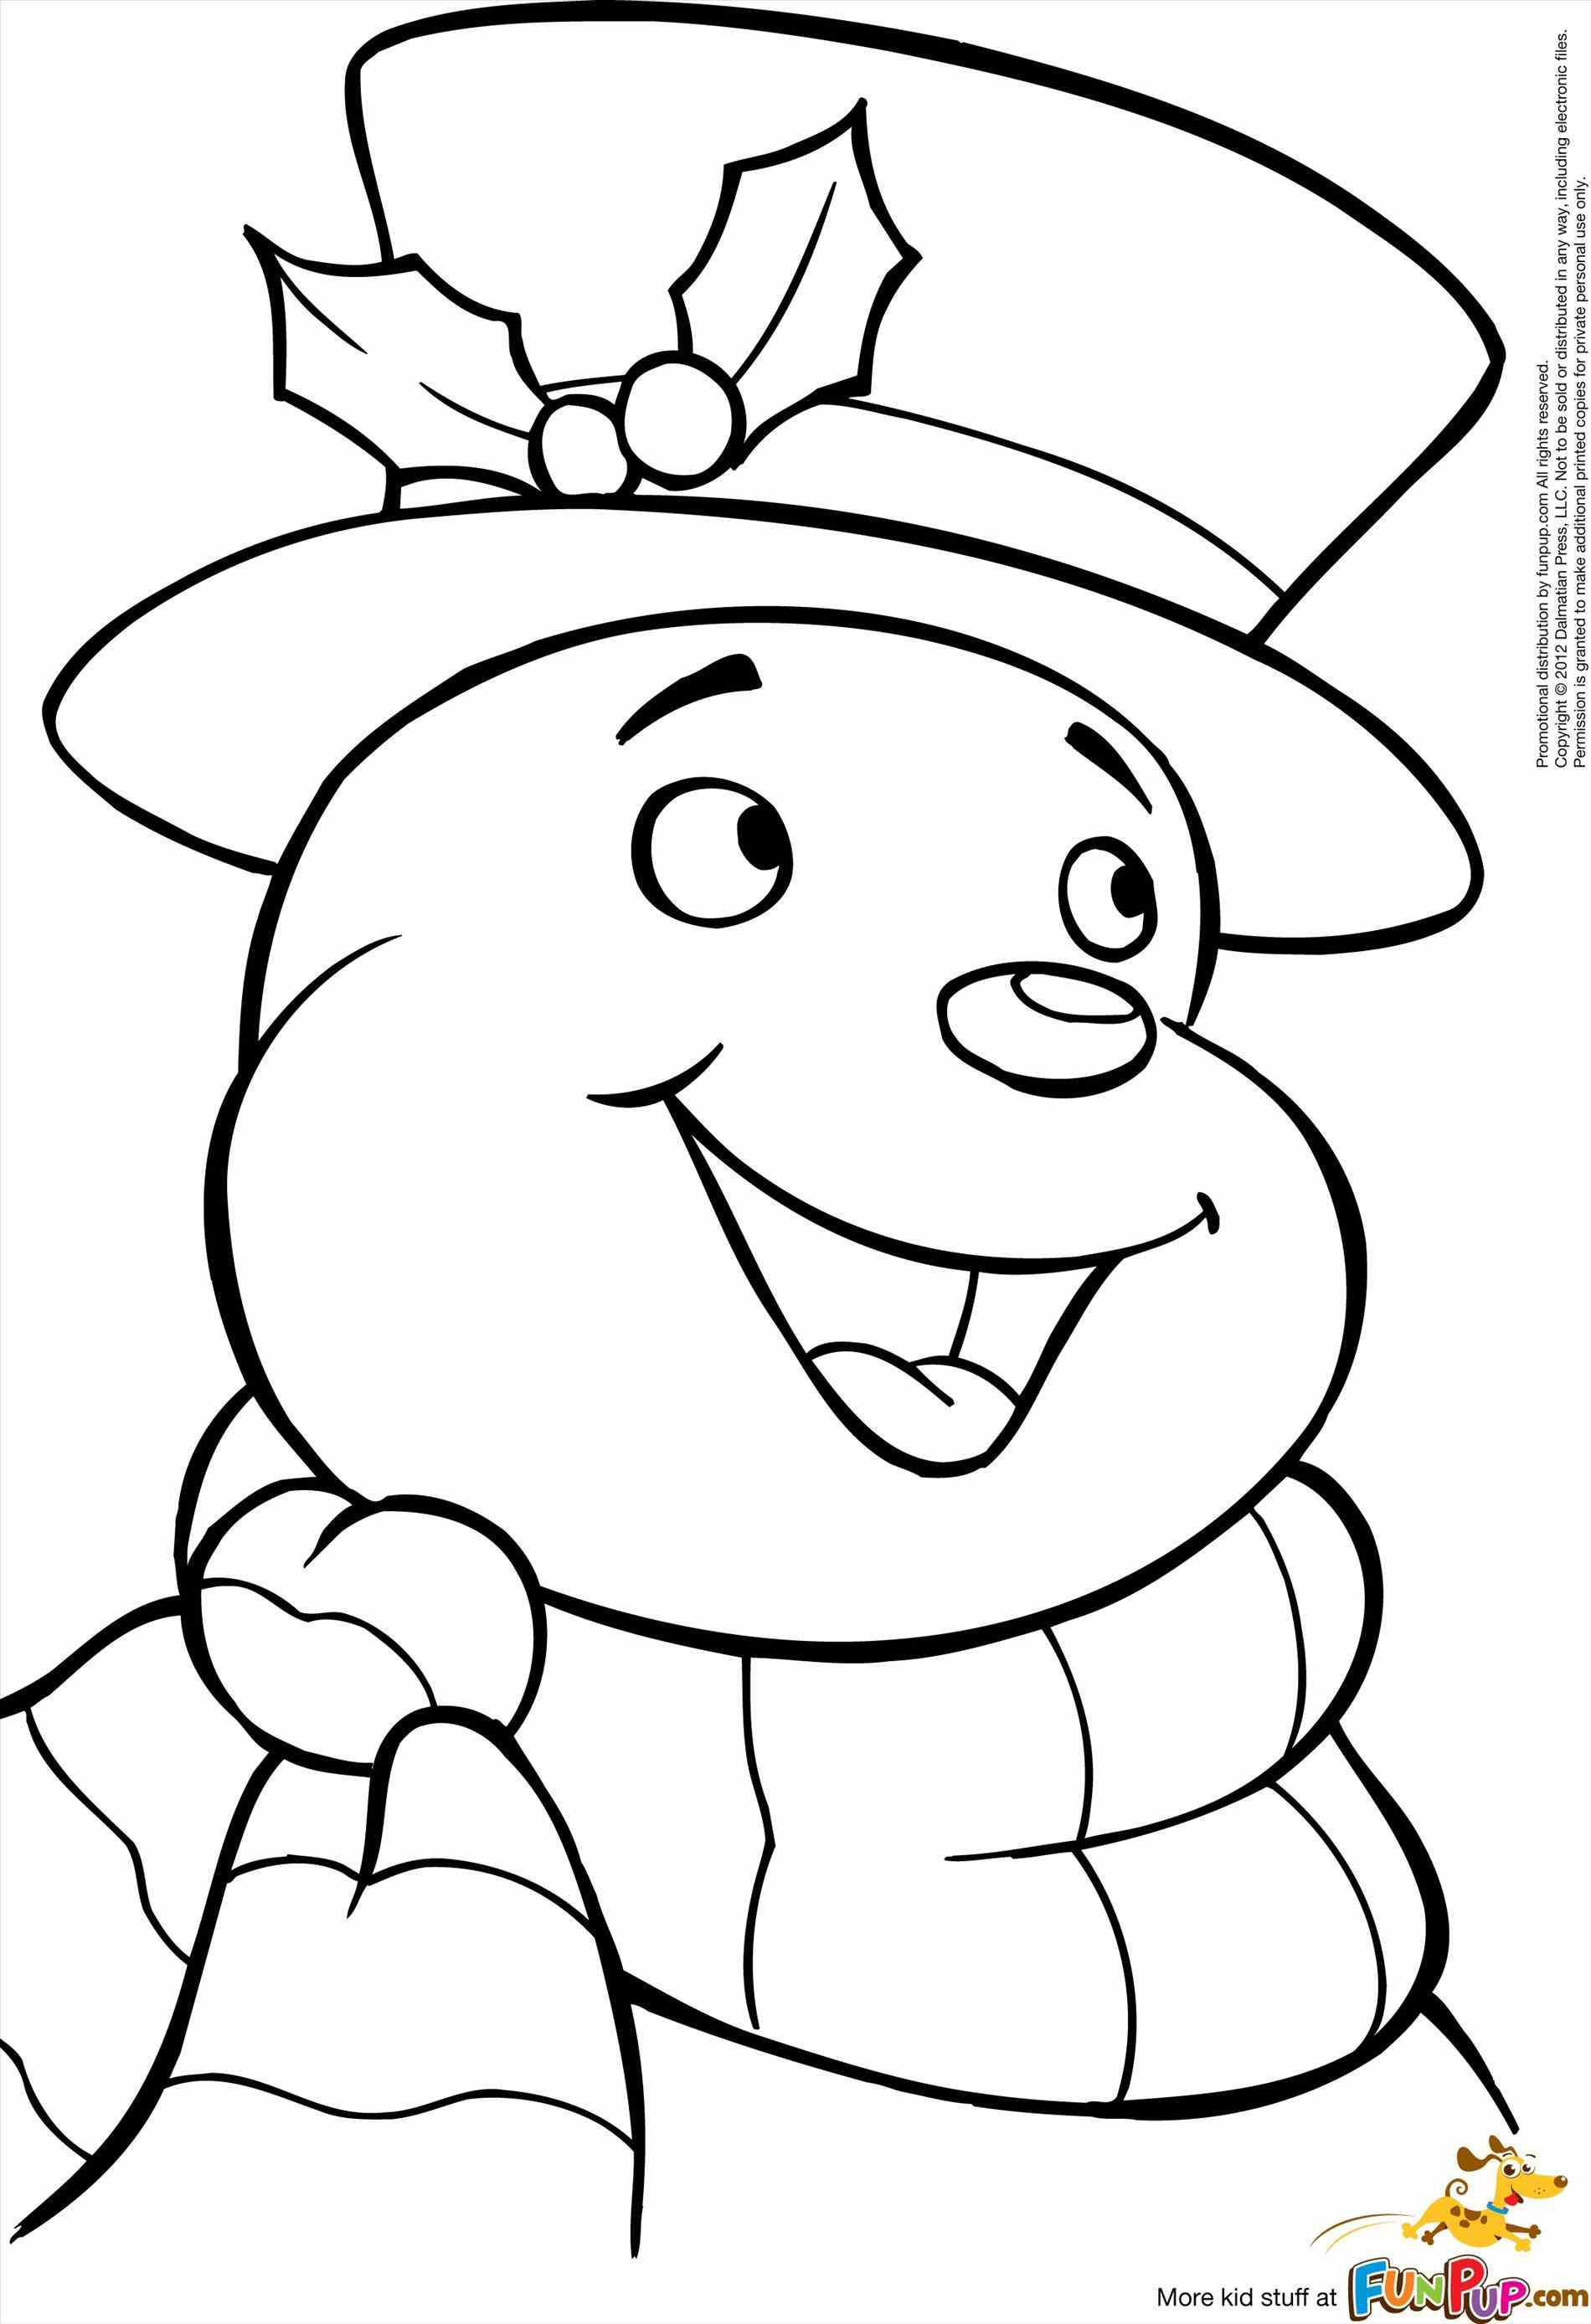 Snowman Coloring Pages | Free download best Snowman Coloring Pages ...